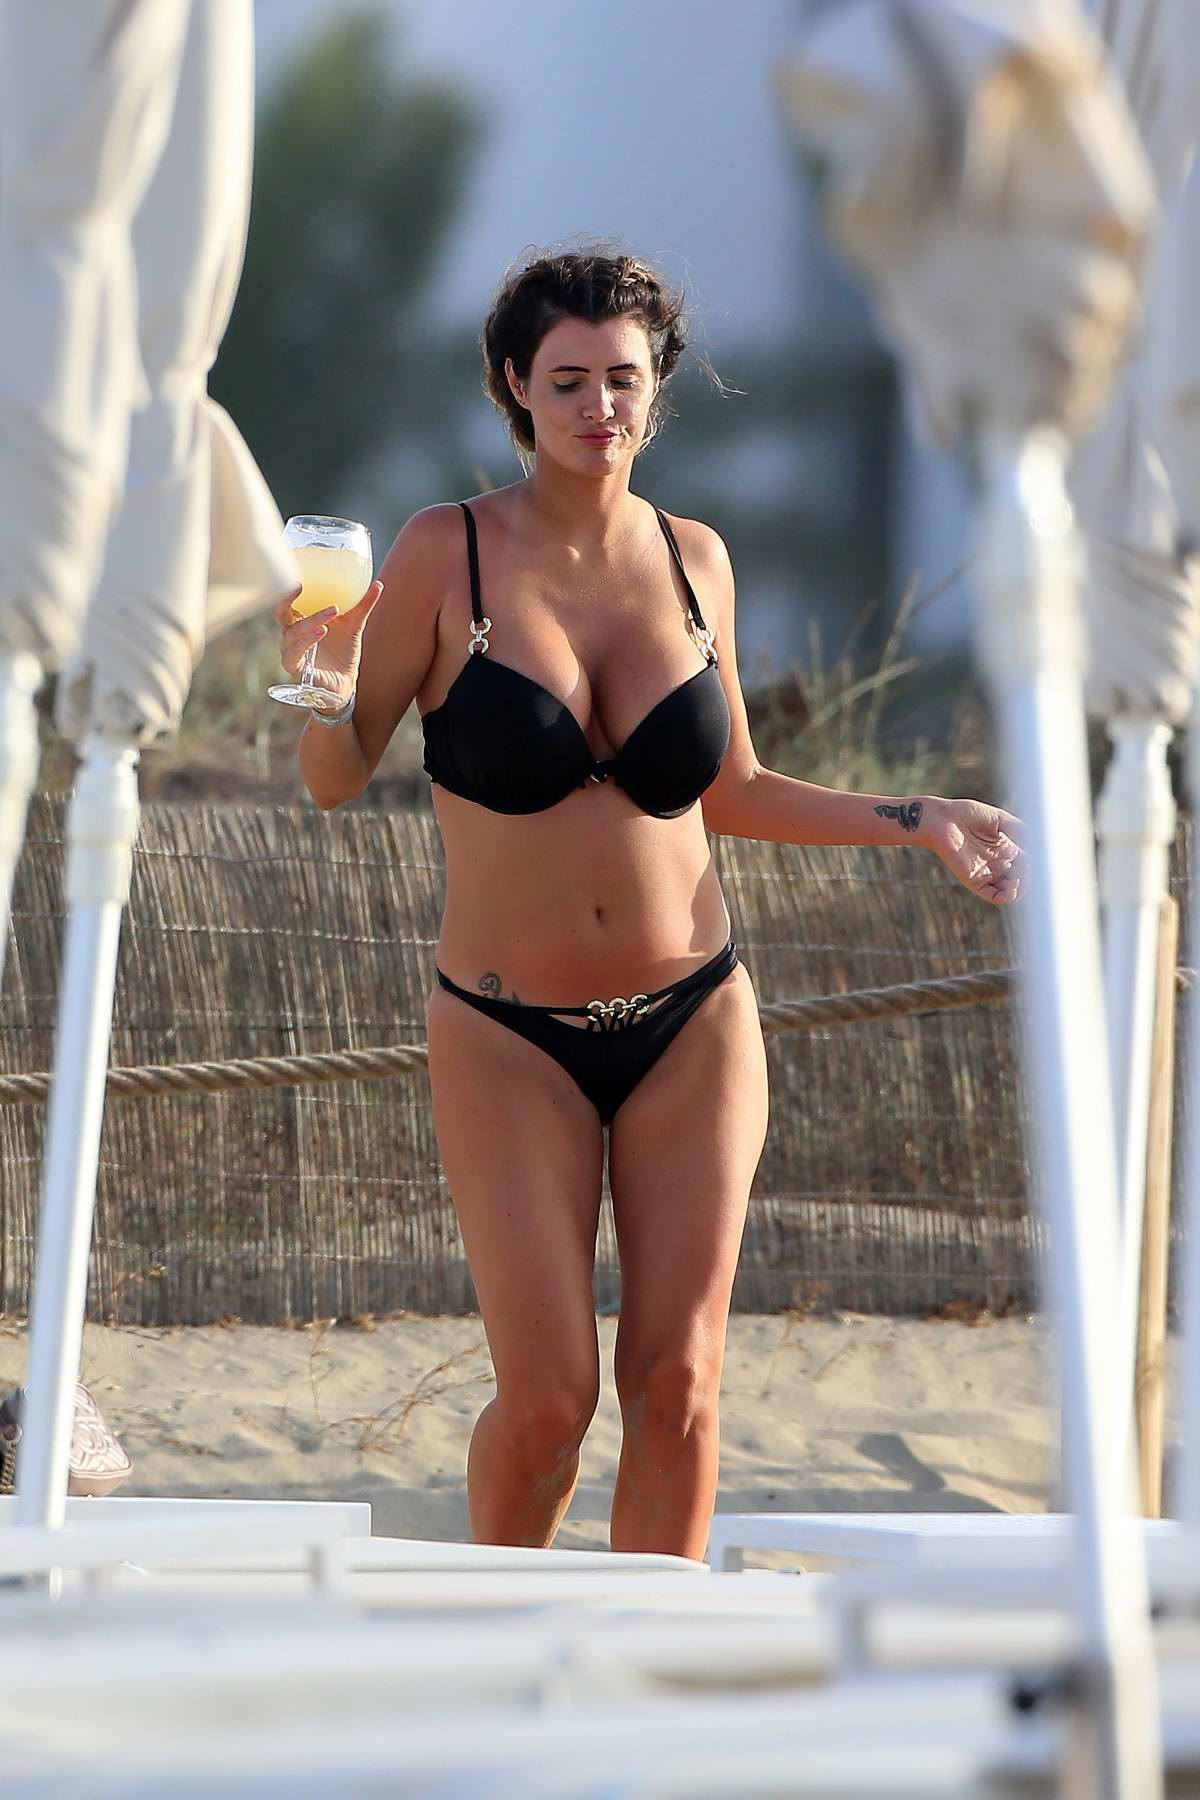 Helen Wood dons a black bikini while having a good time at the beach with a friend in Ibiza, Spain